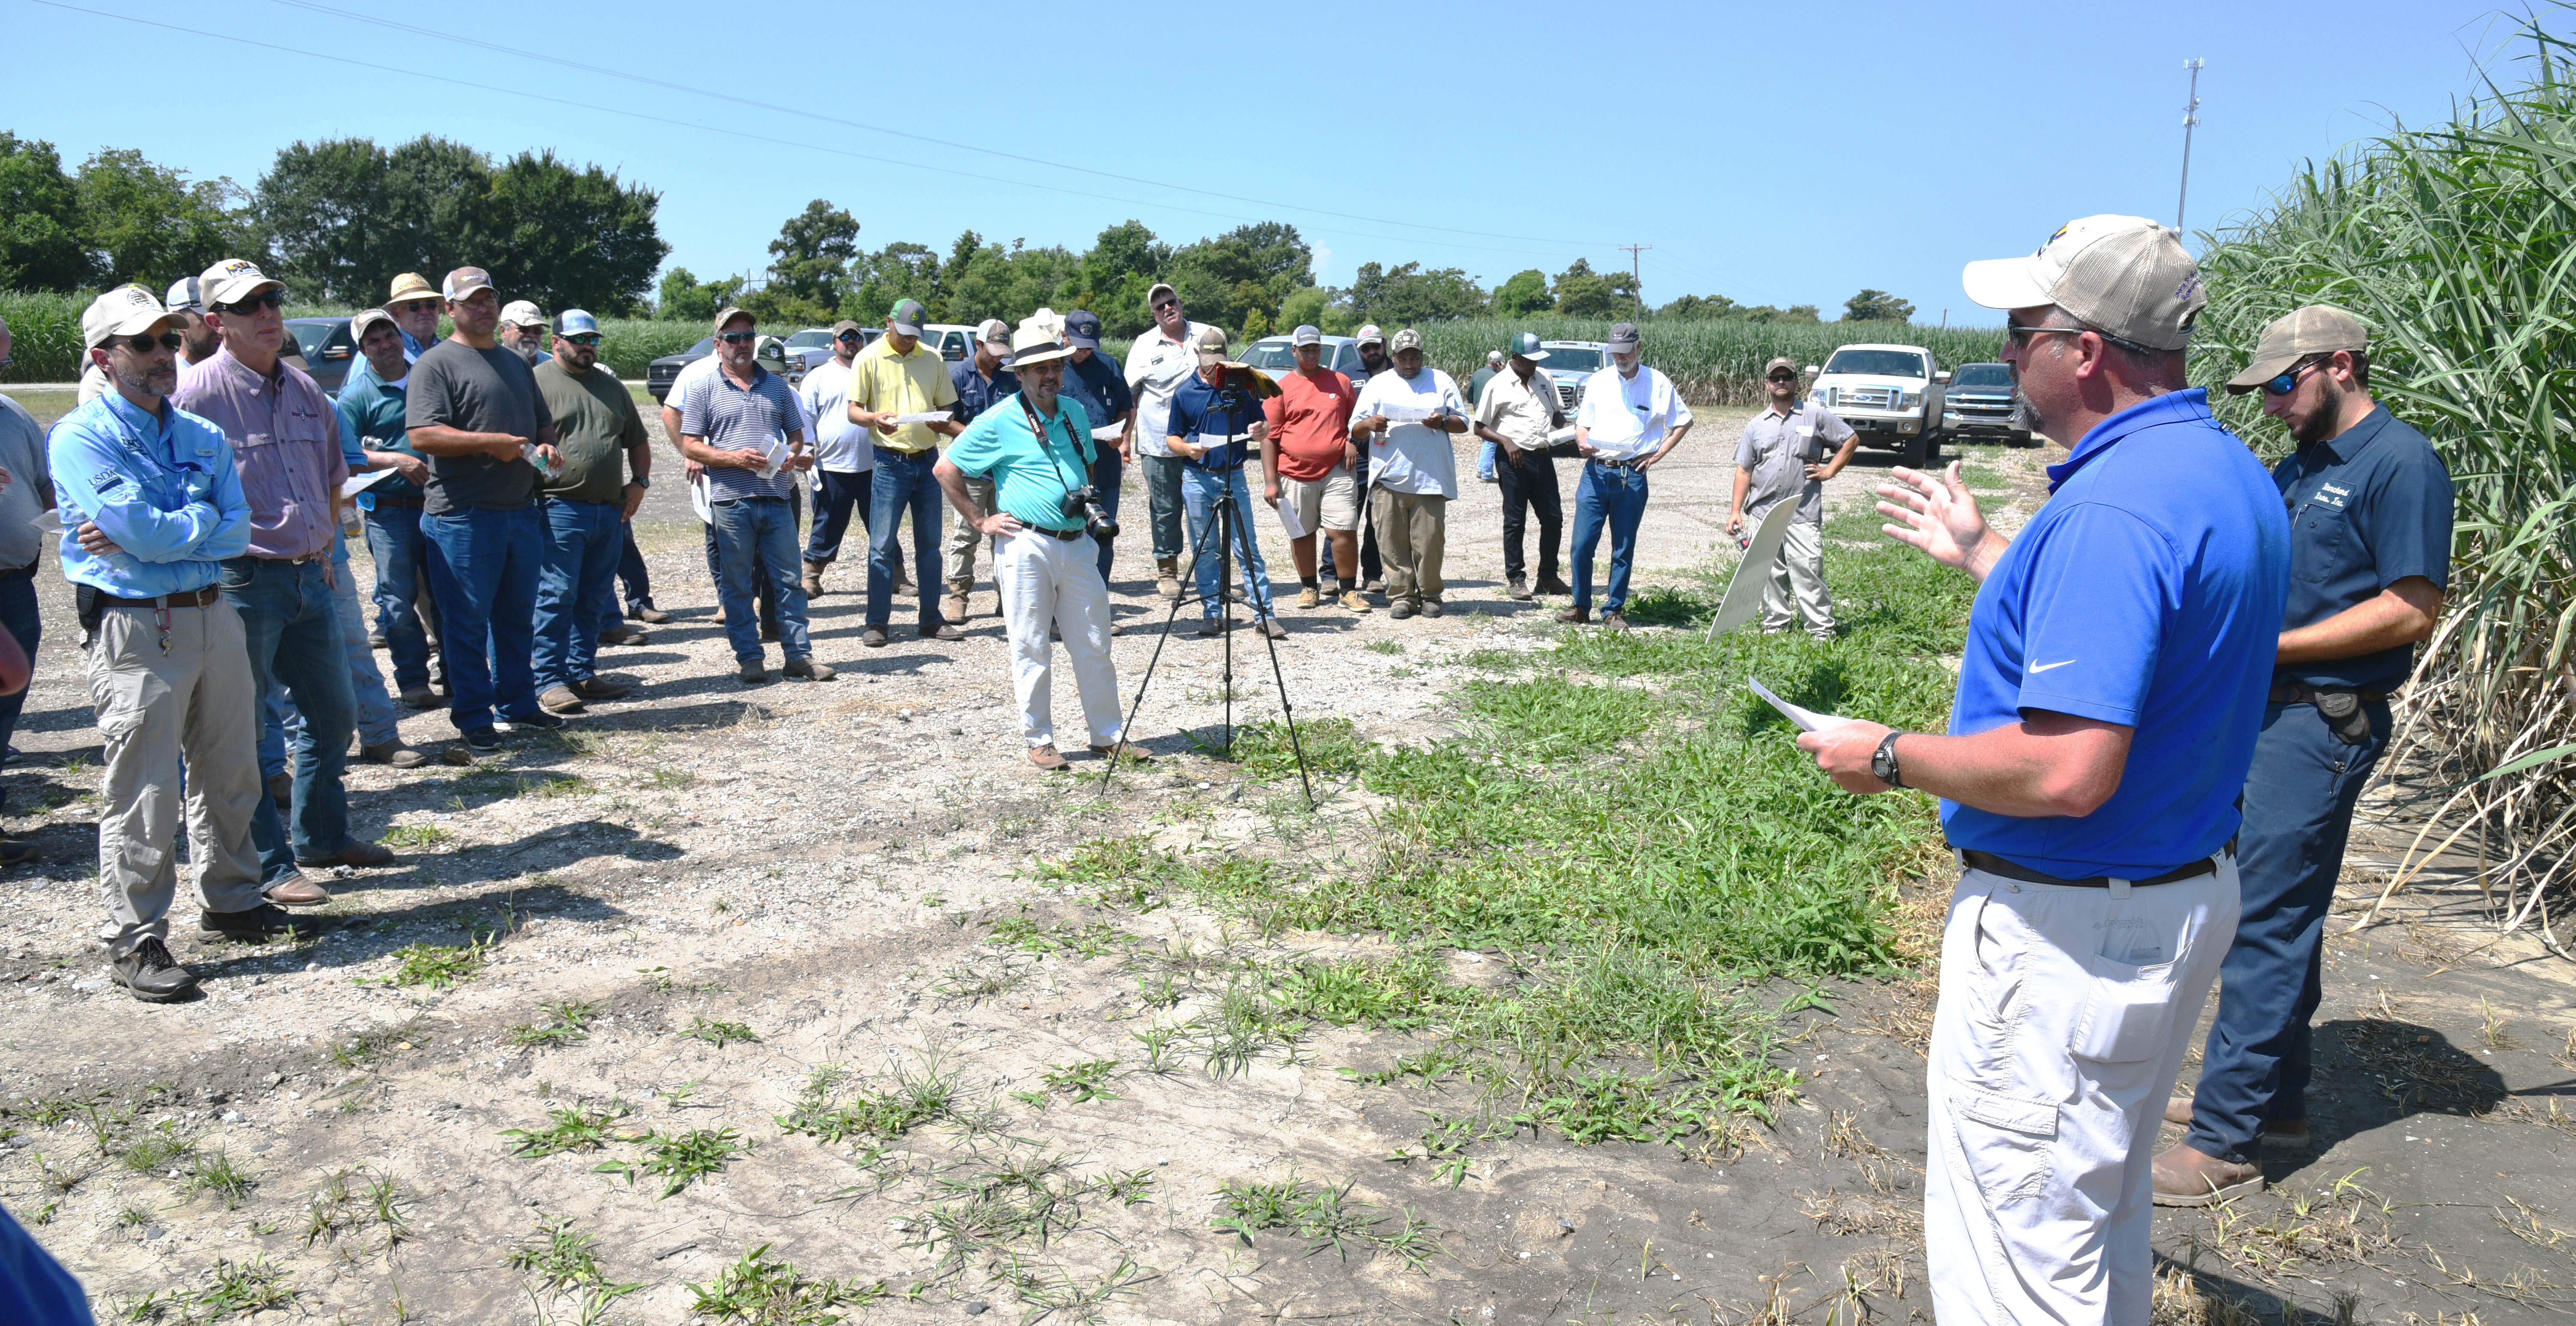 Cover crops featured at sugarcane field day